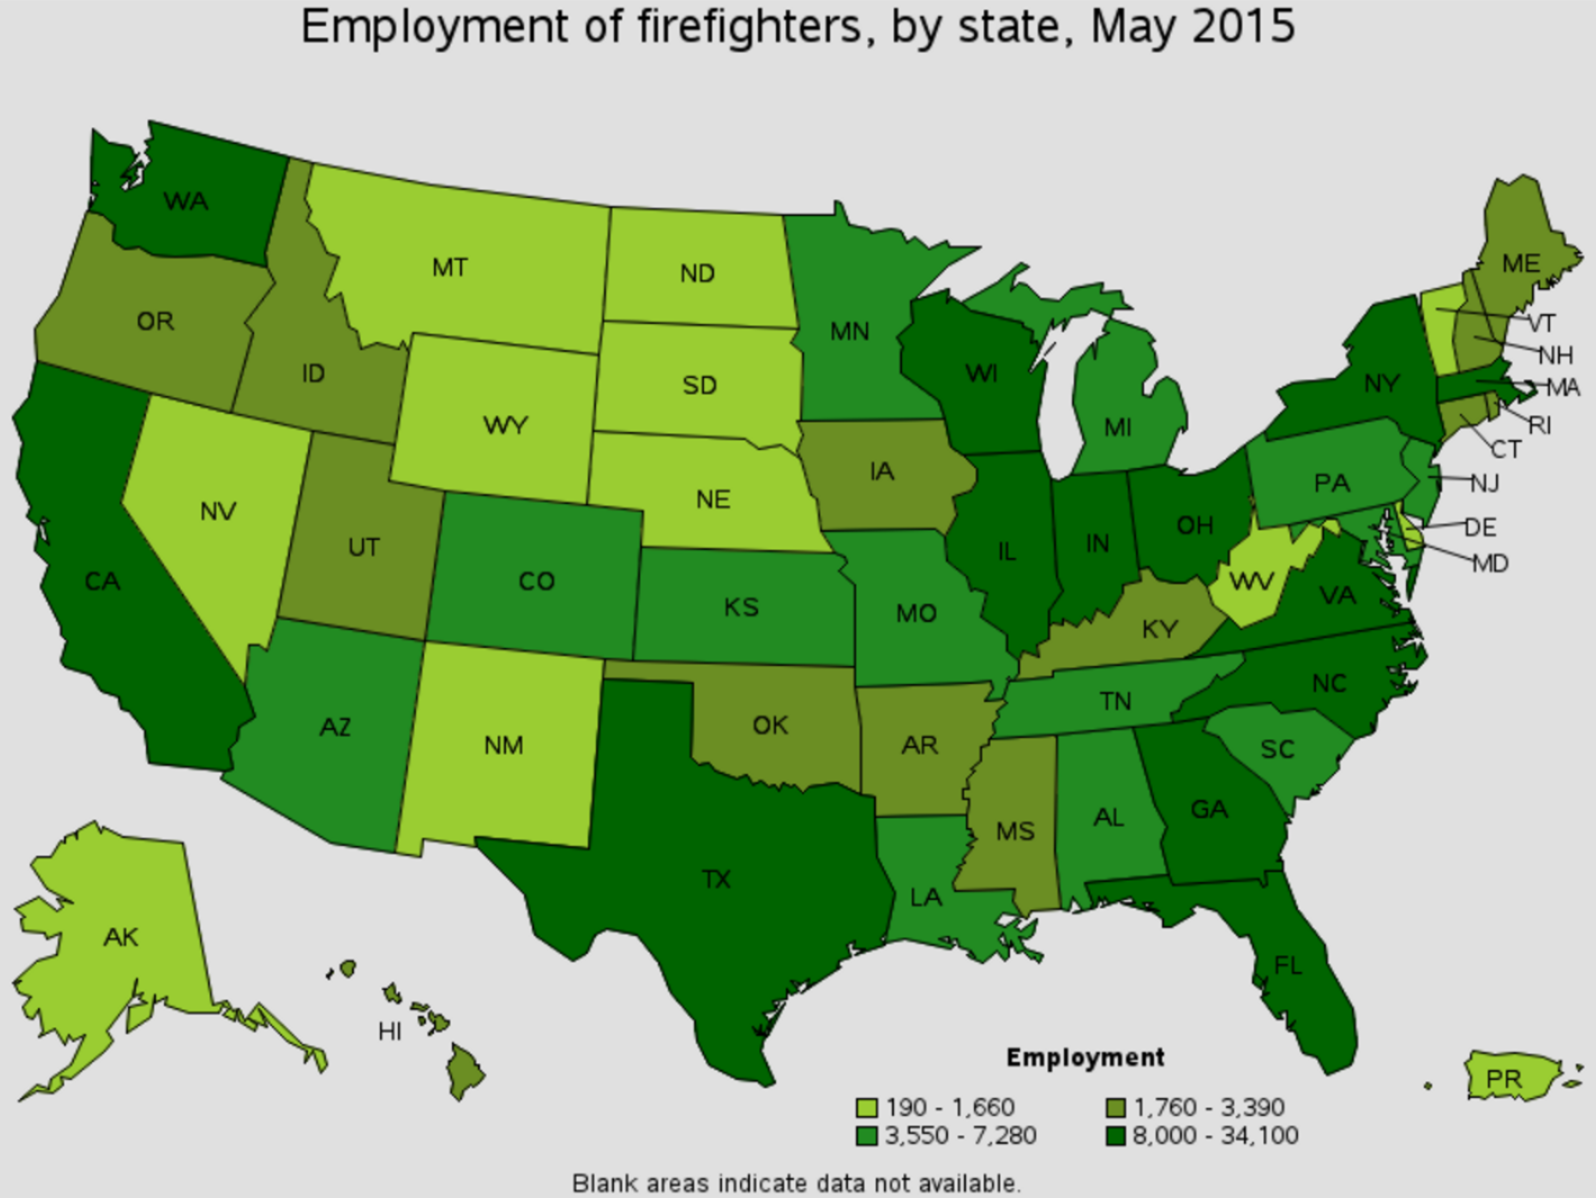 firefighter job outlook by state Zionsville Indiana